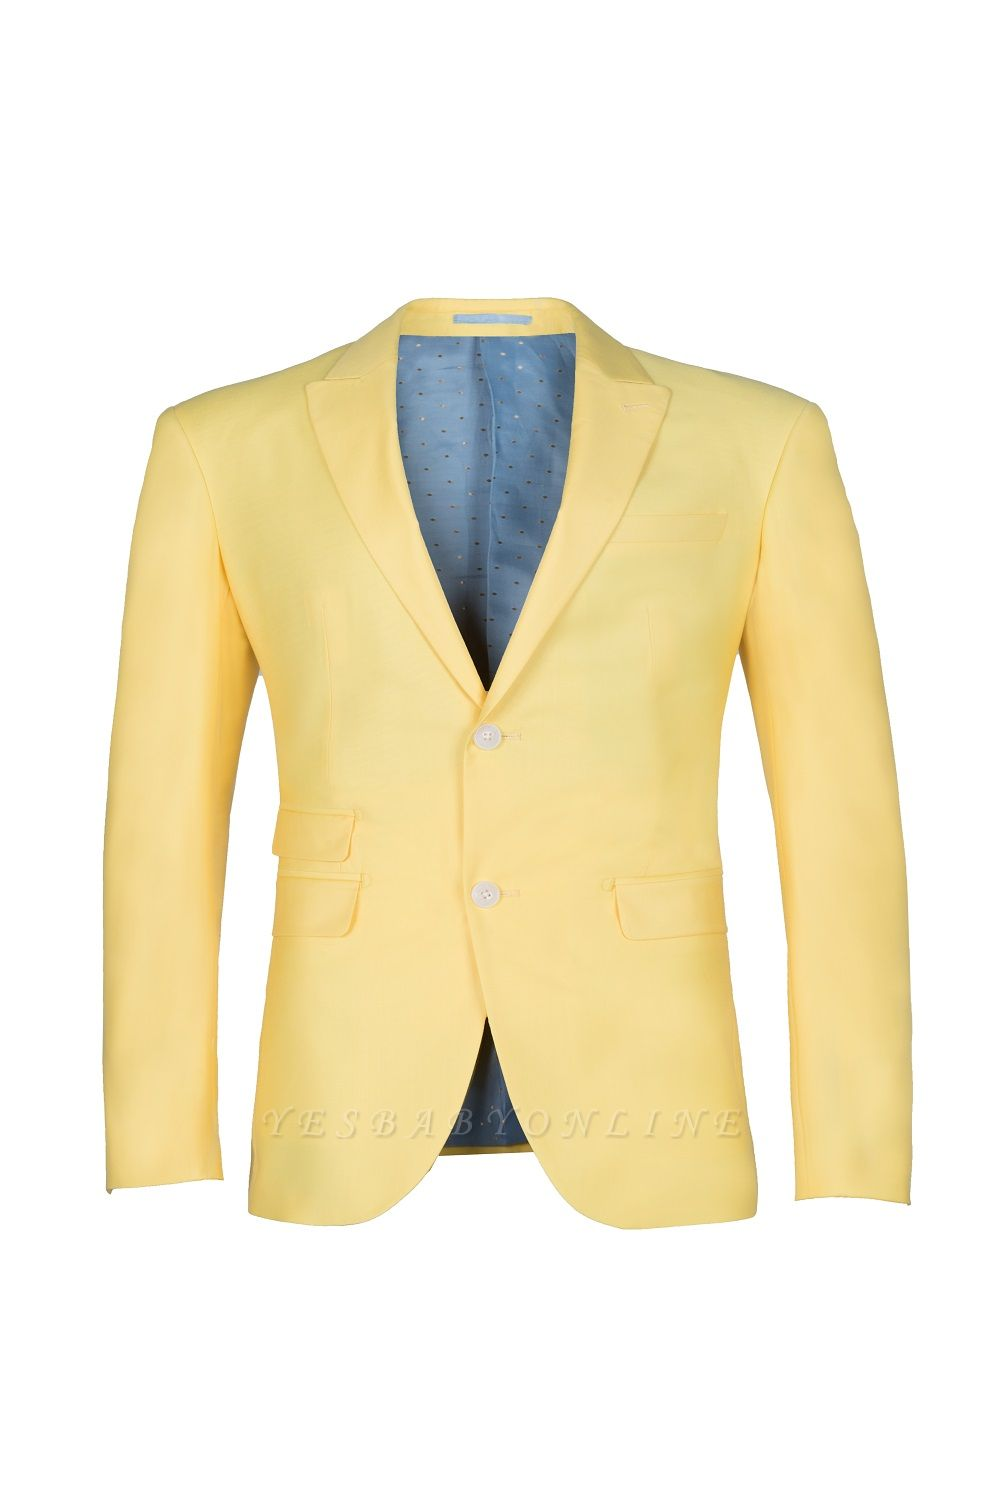 Noched Lapel Two Button Single Breasted Daffodil Wedding Suit Slim Fit